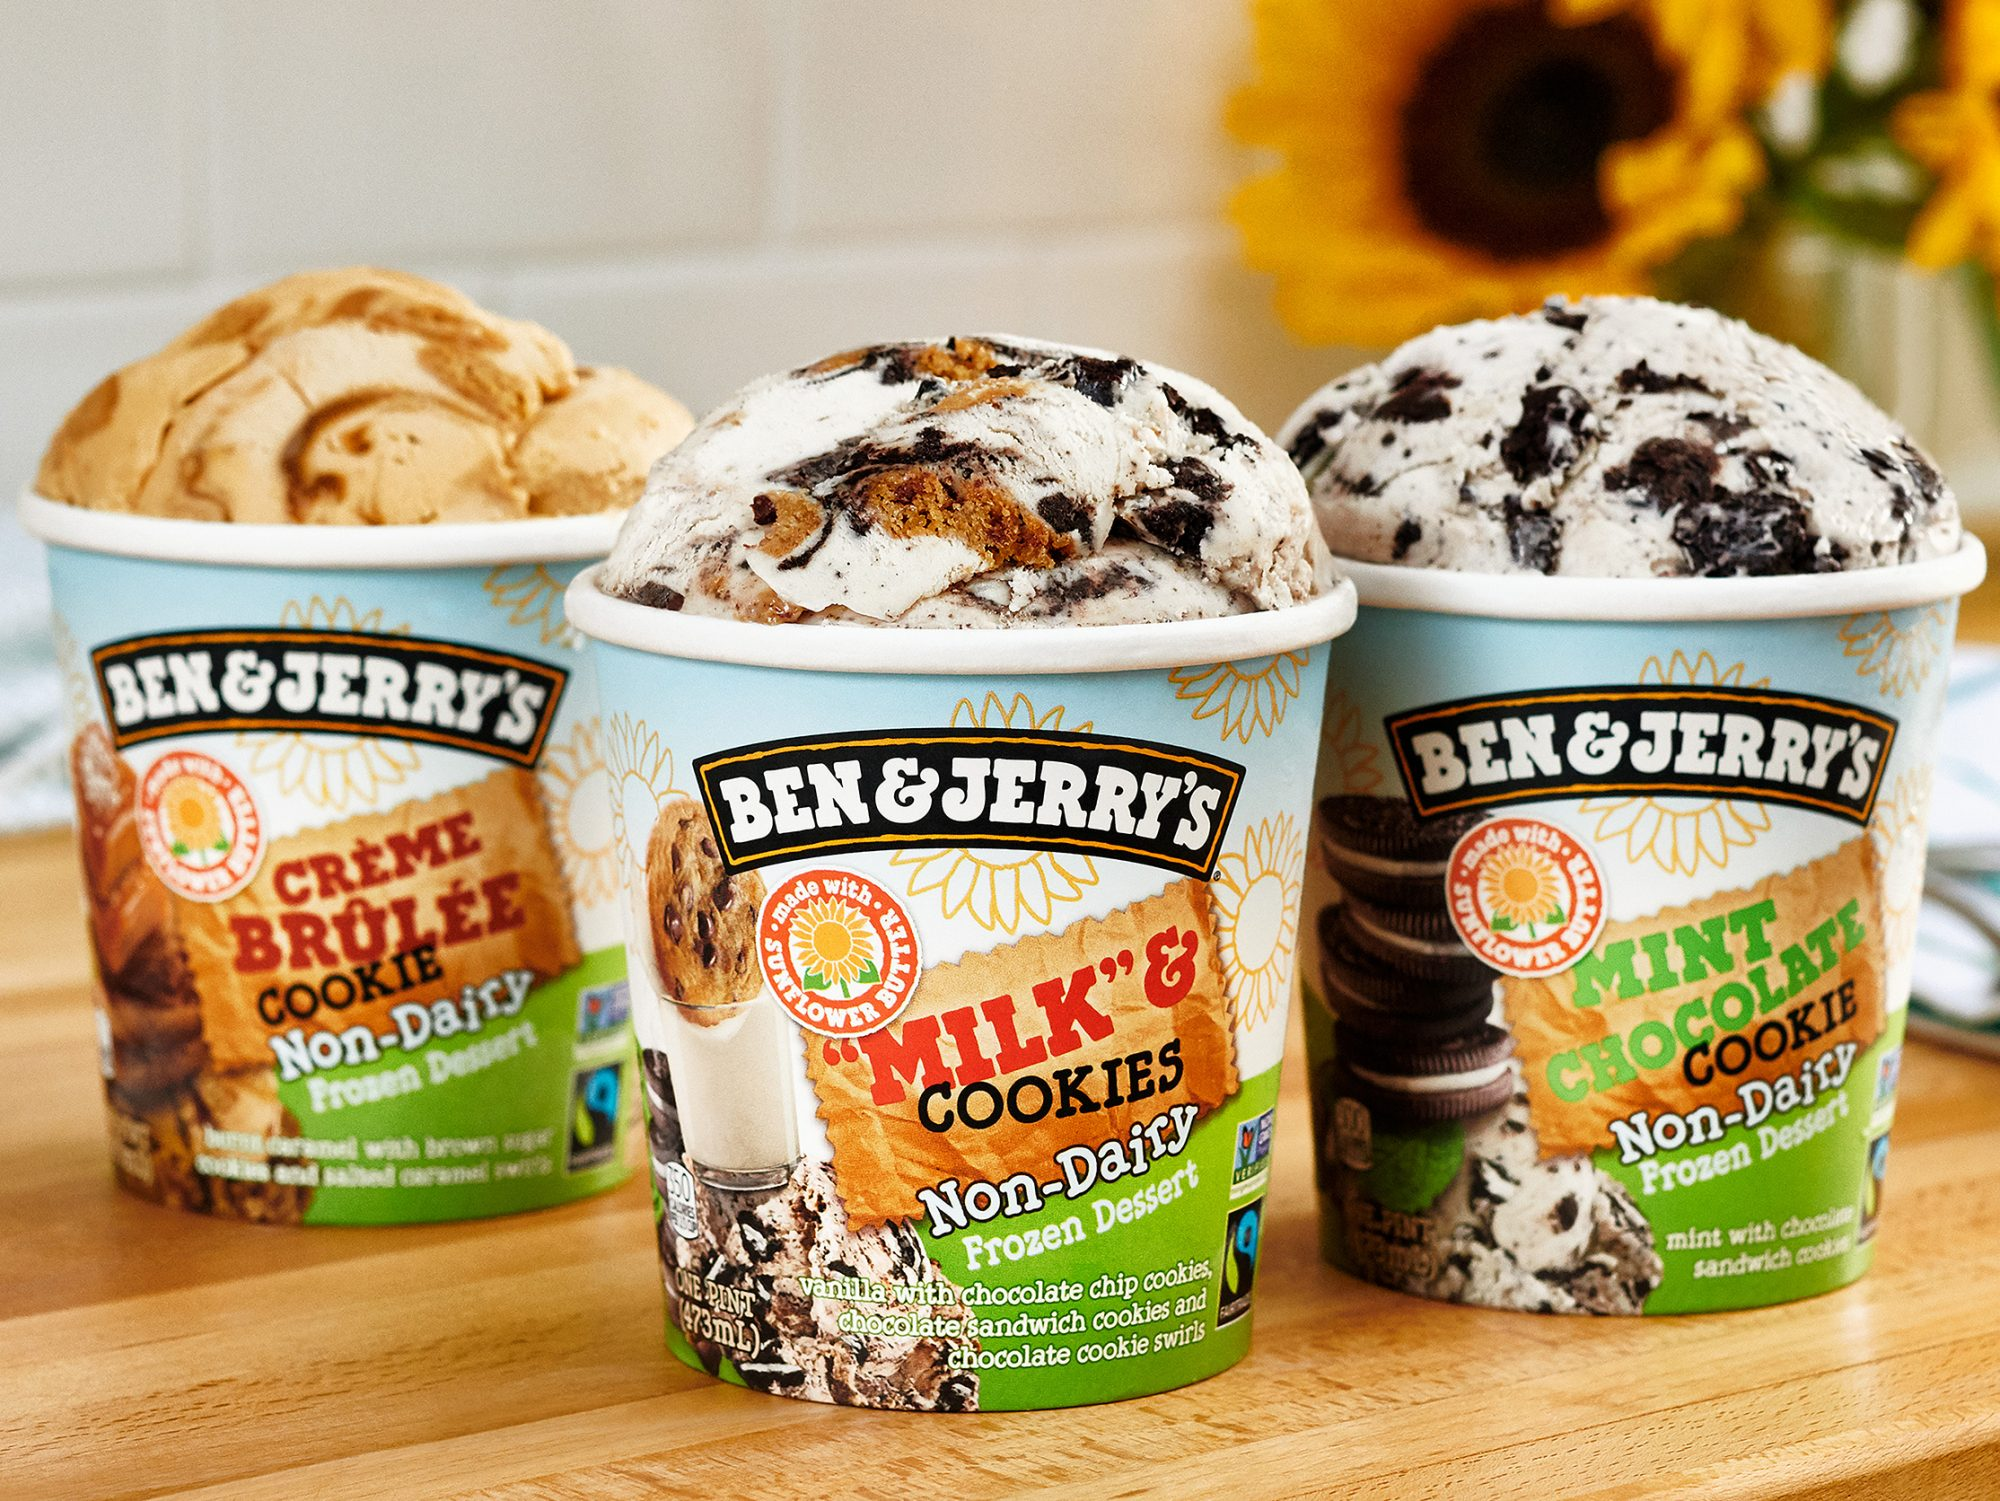 Ben & Jerry's Newest Non-Dairy Flavors Are Made With a Creative Ingredient